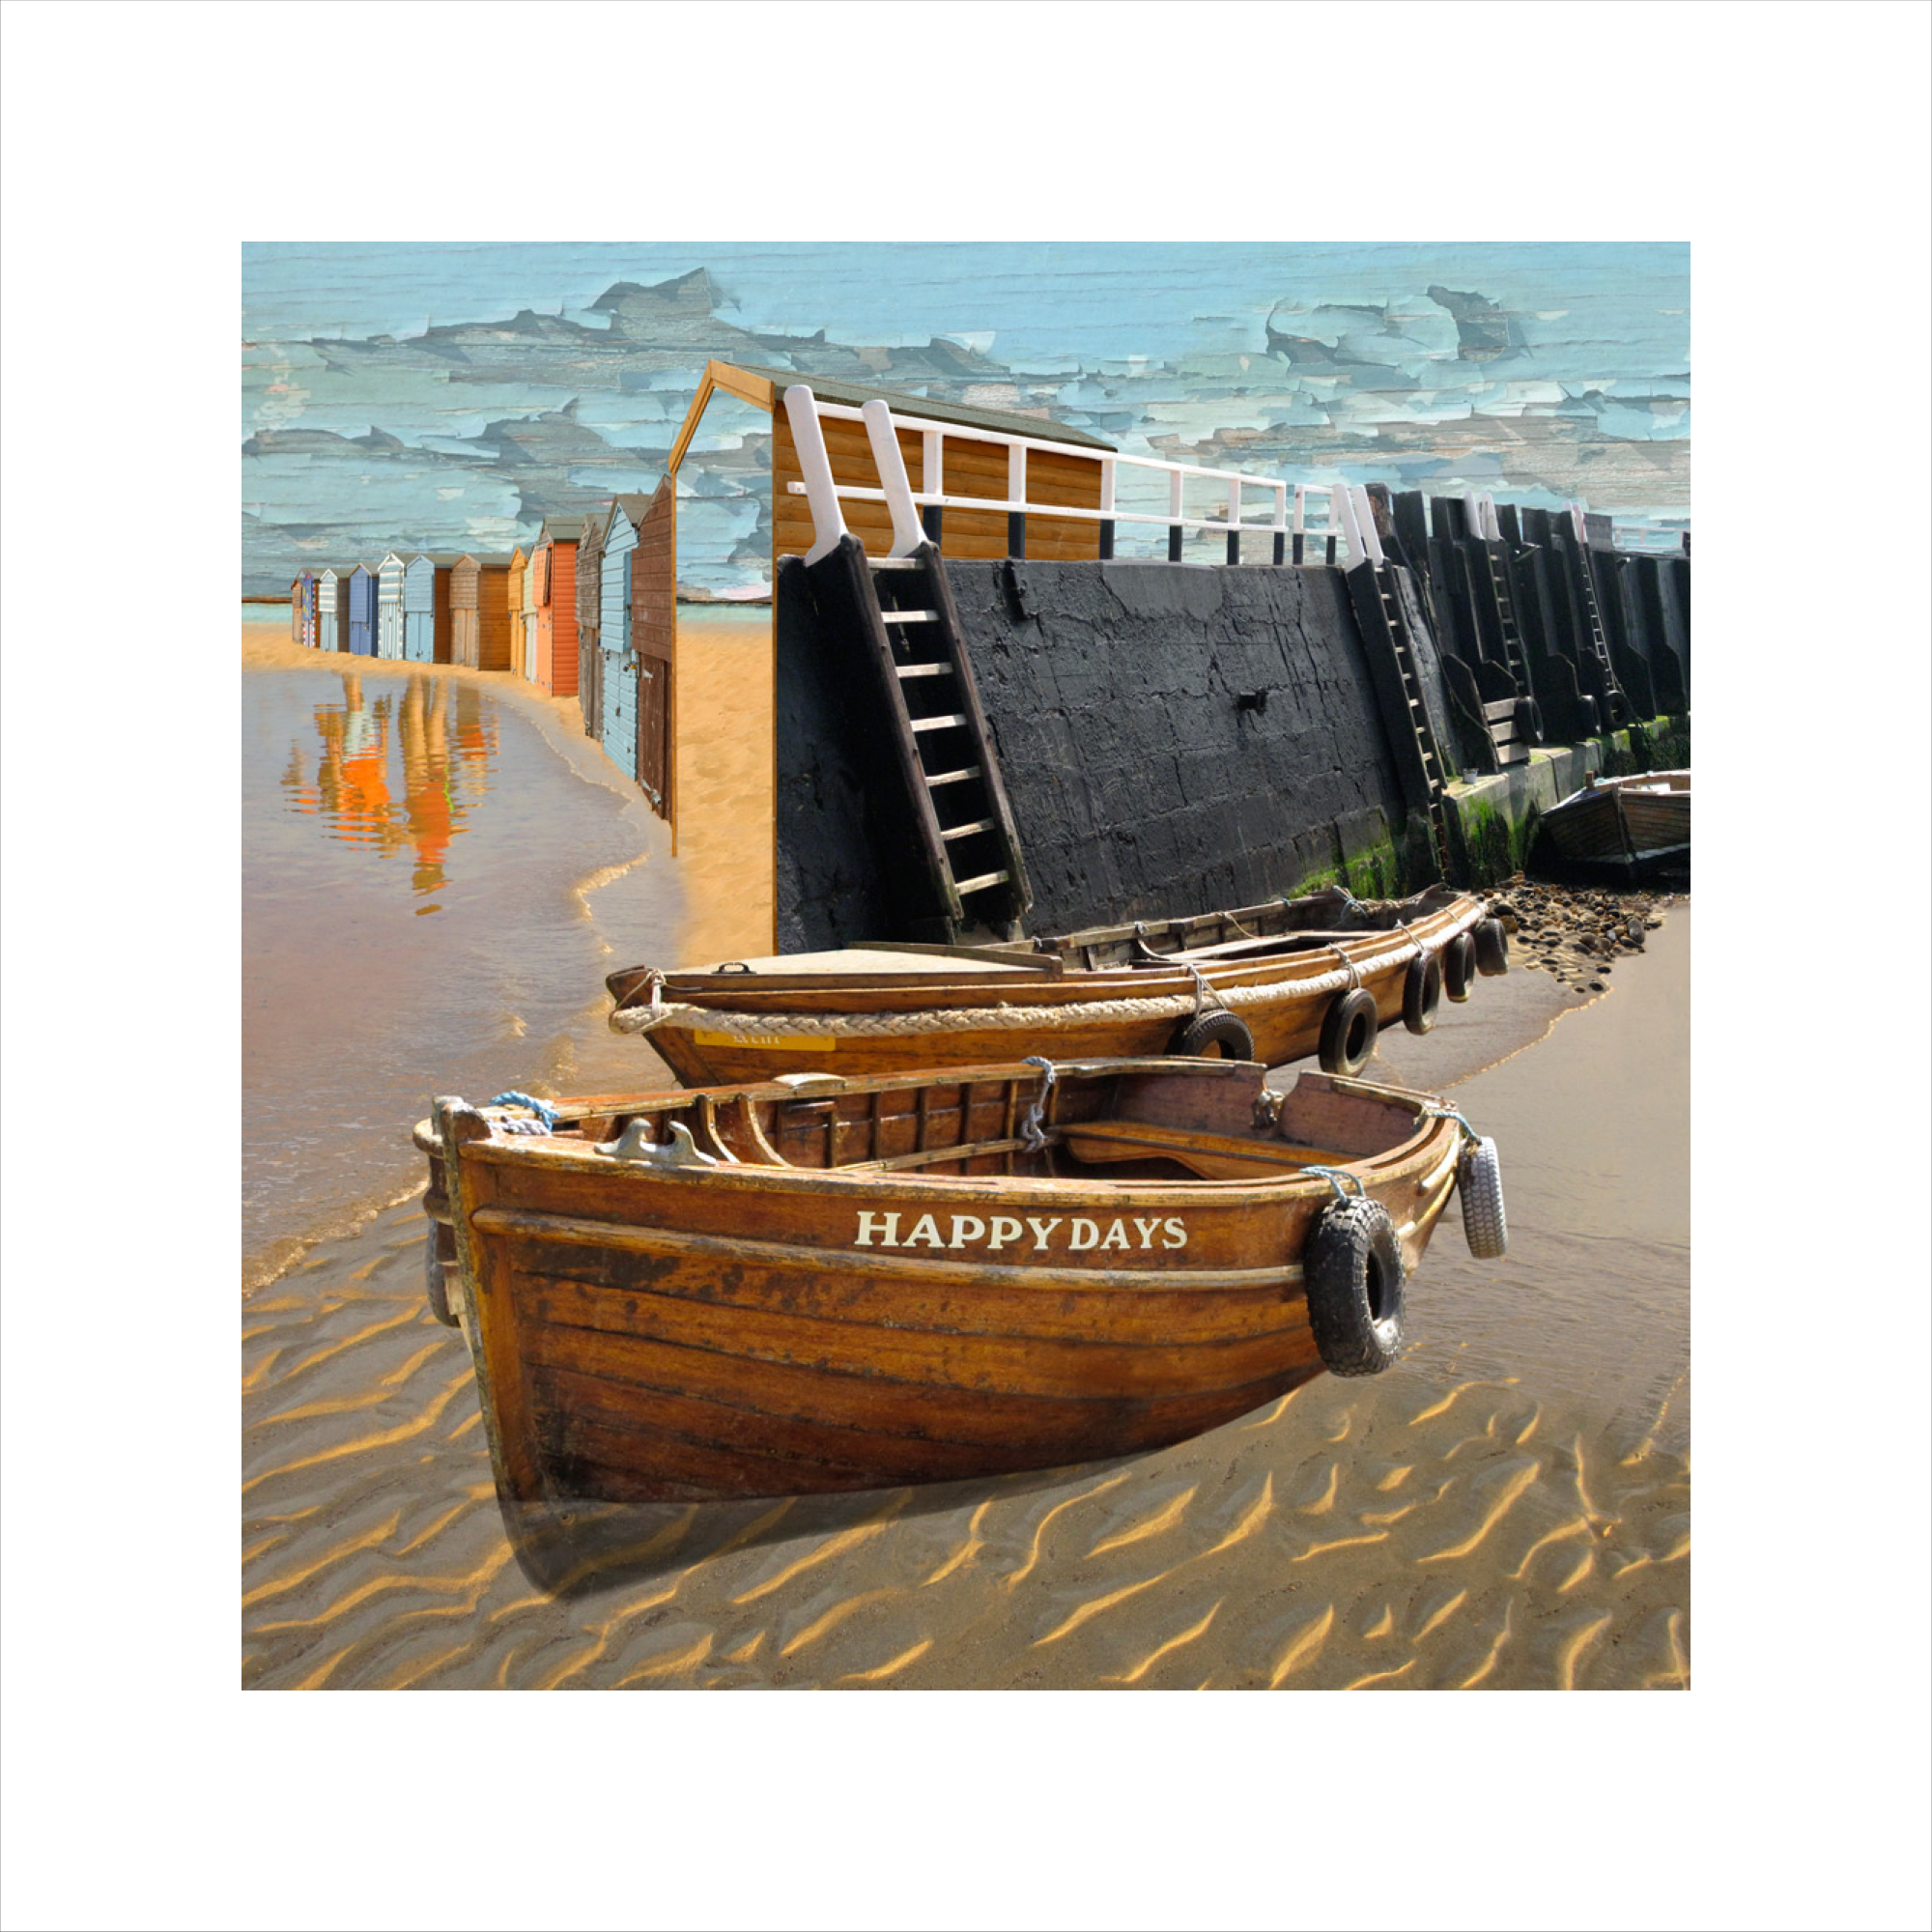 Claire Gill, Limited edition prints, digital photomontage, fine art prints, hahnemuhle, coastal art, Collect Art, seascape 42, Broadstairs, happy days, boats